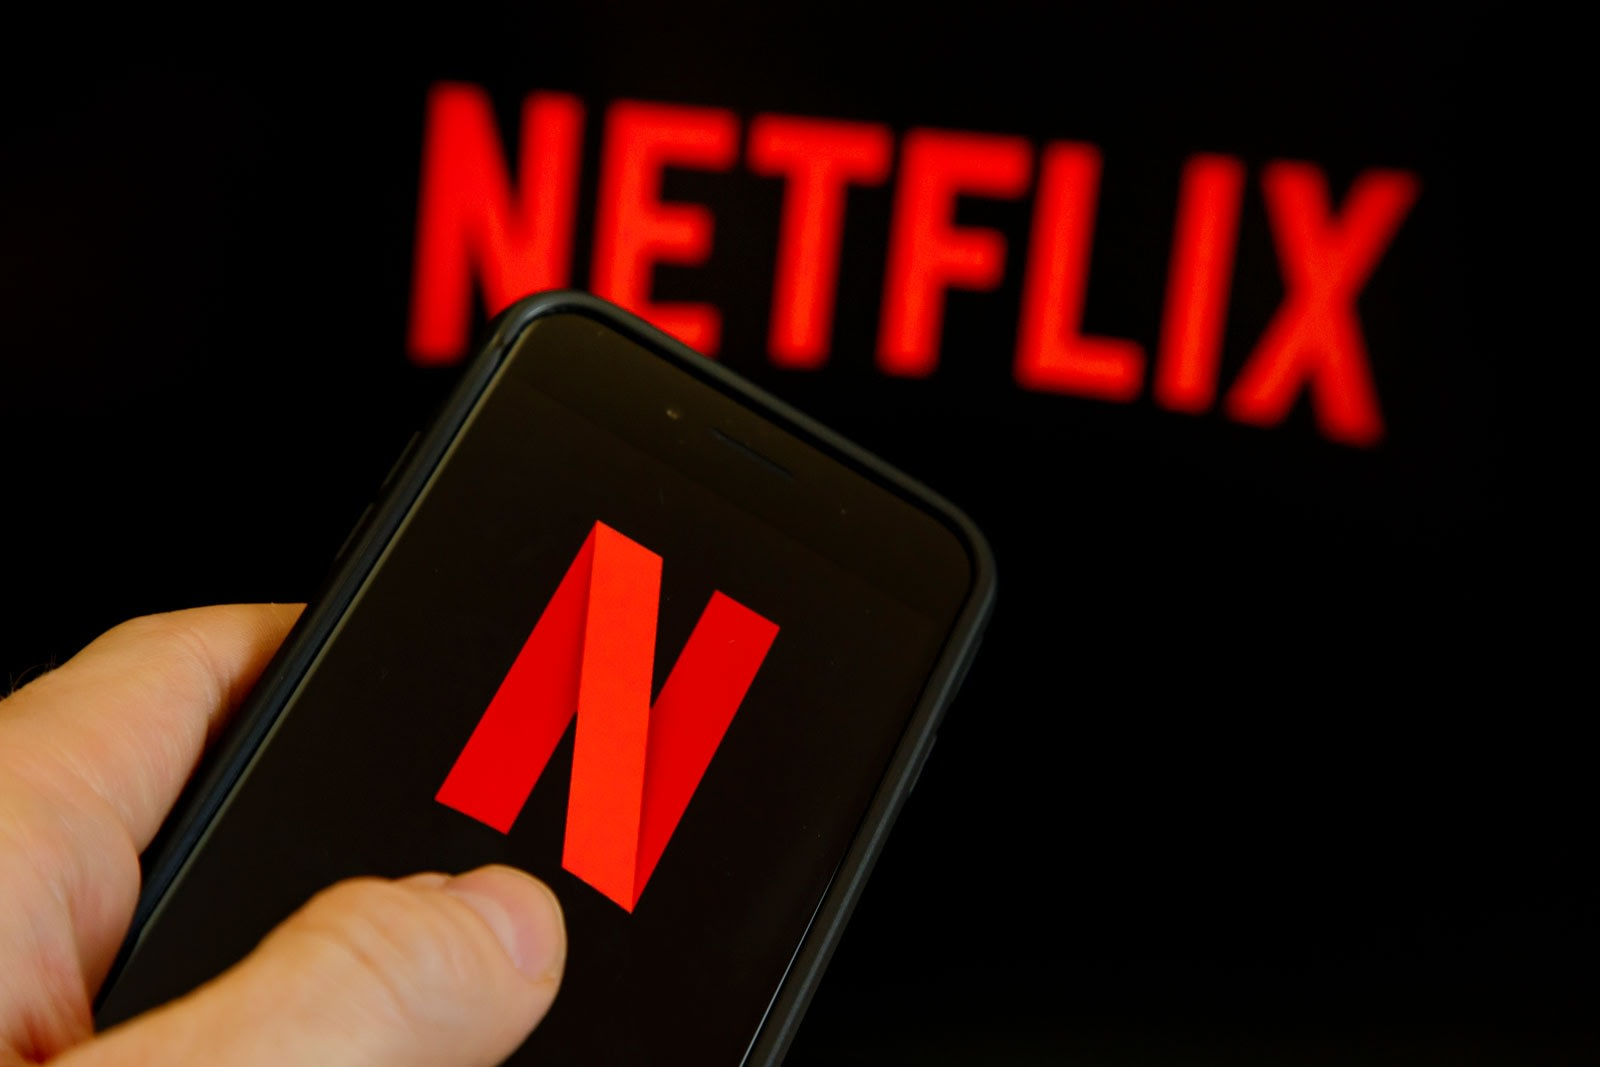 Netflix will raise $2 billion to pay for more original content